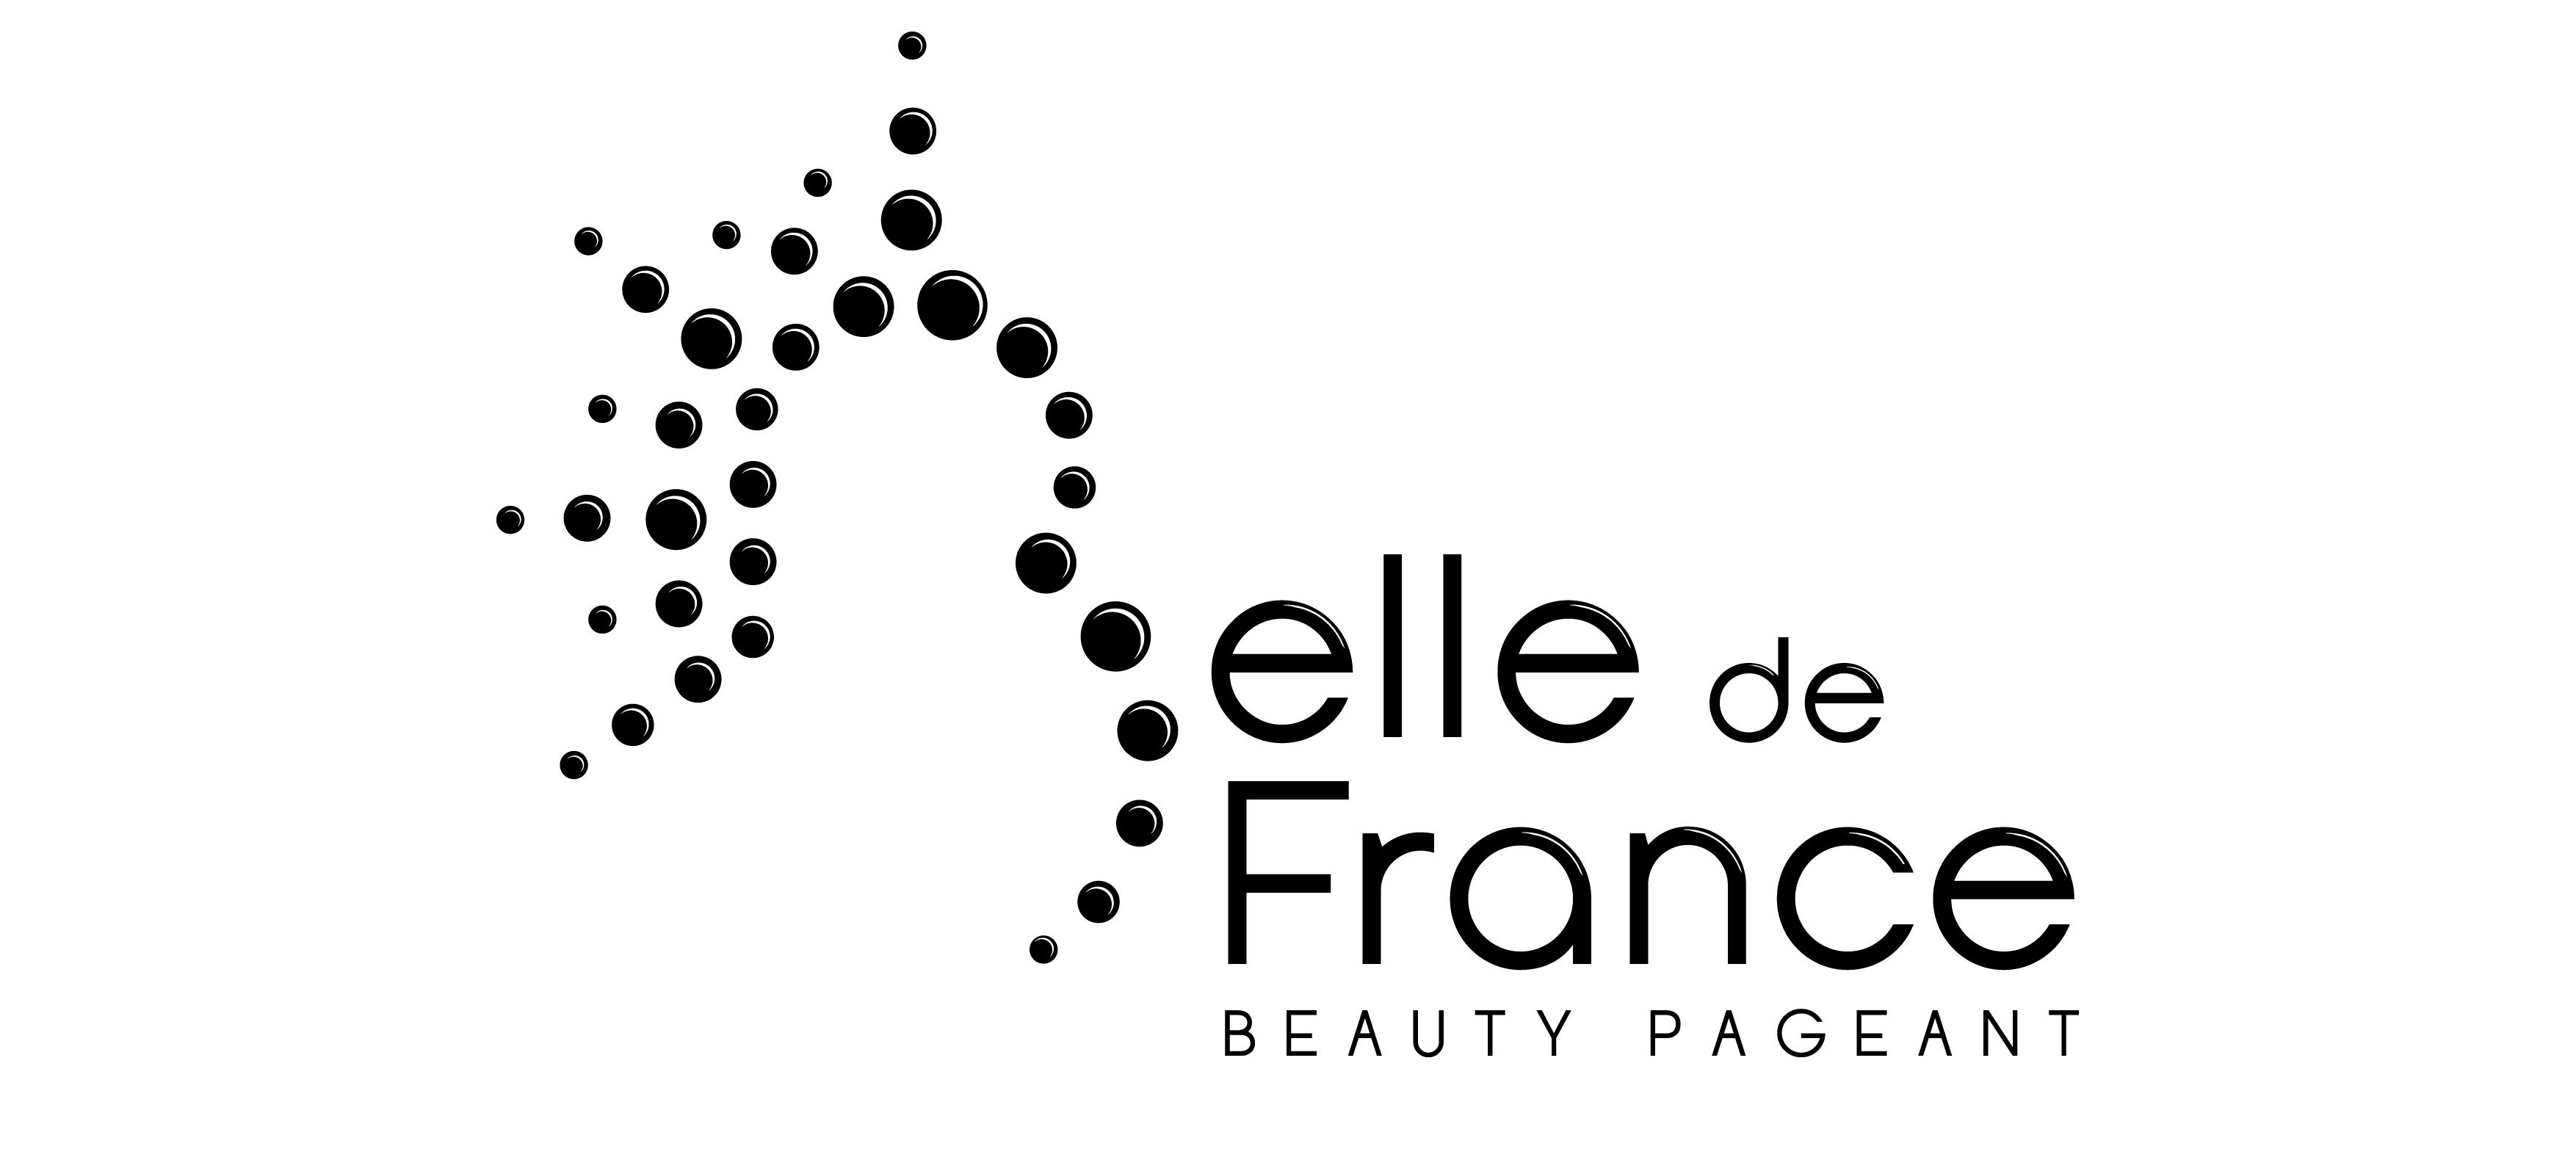 Belle de France – Beauty Pageant